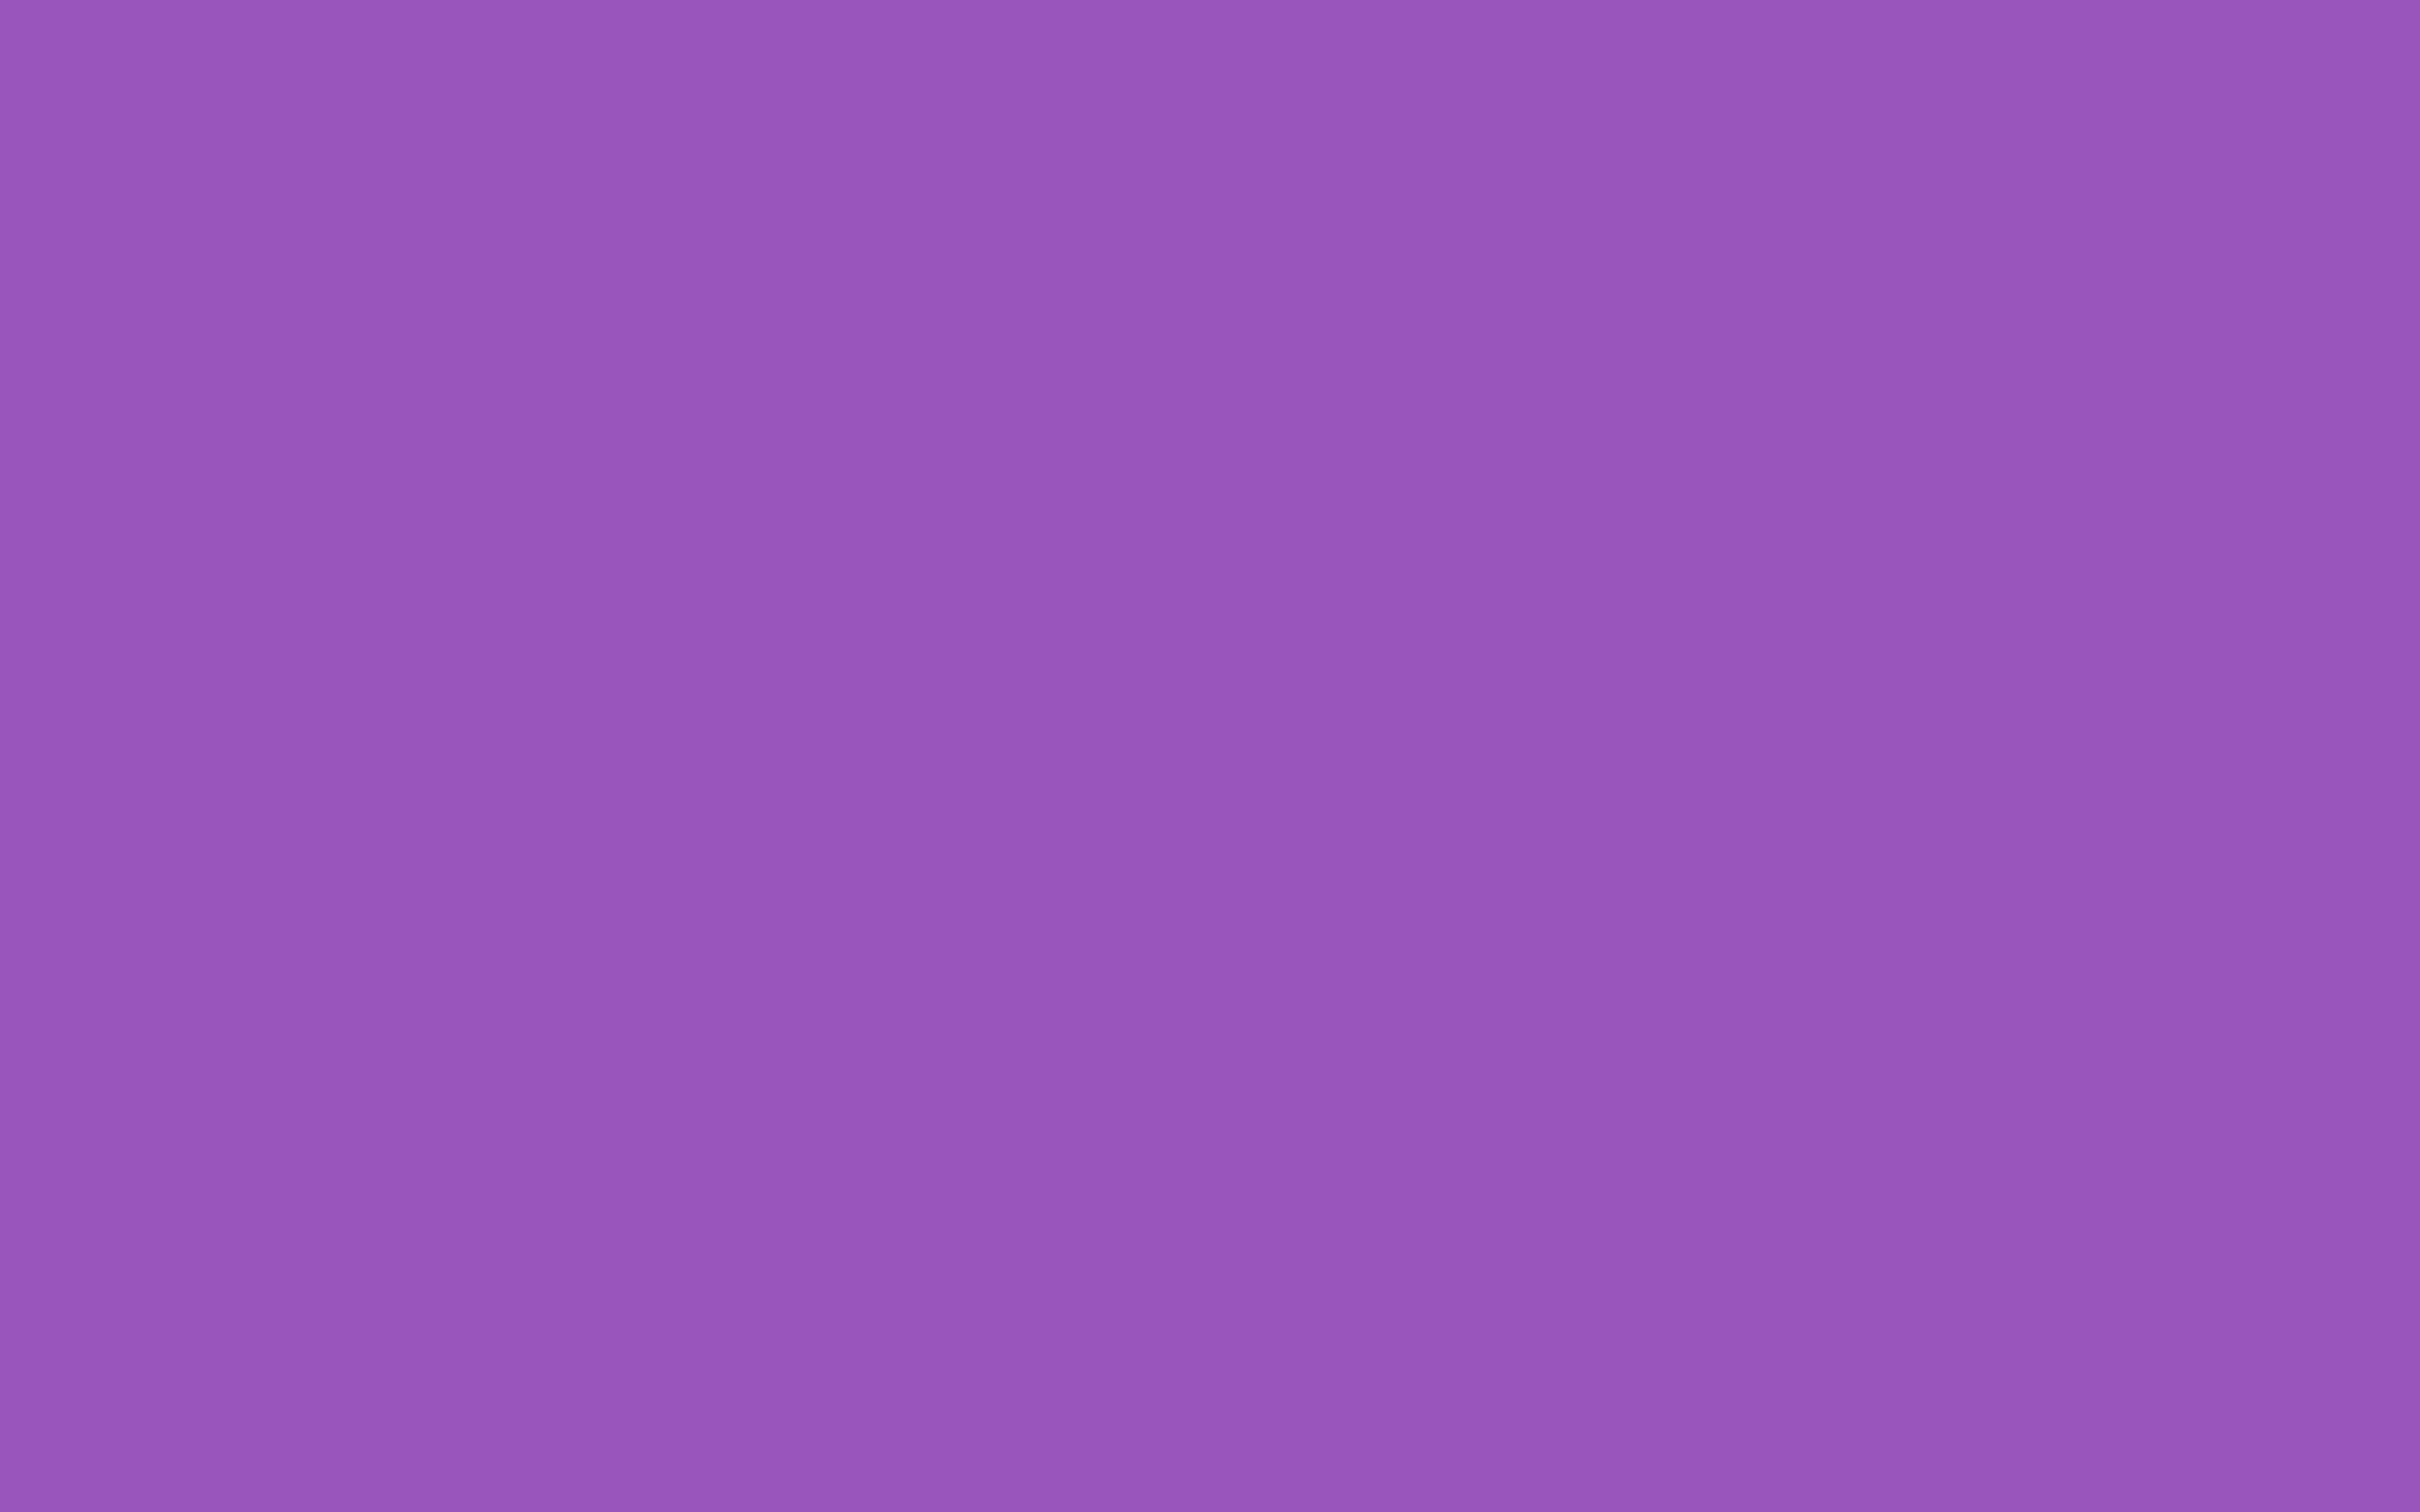 Lilac background wallpaper wallpapersafari for Purple mauve color